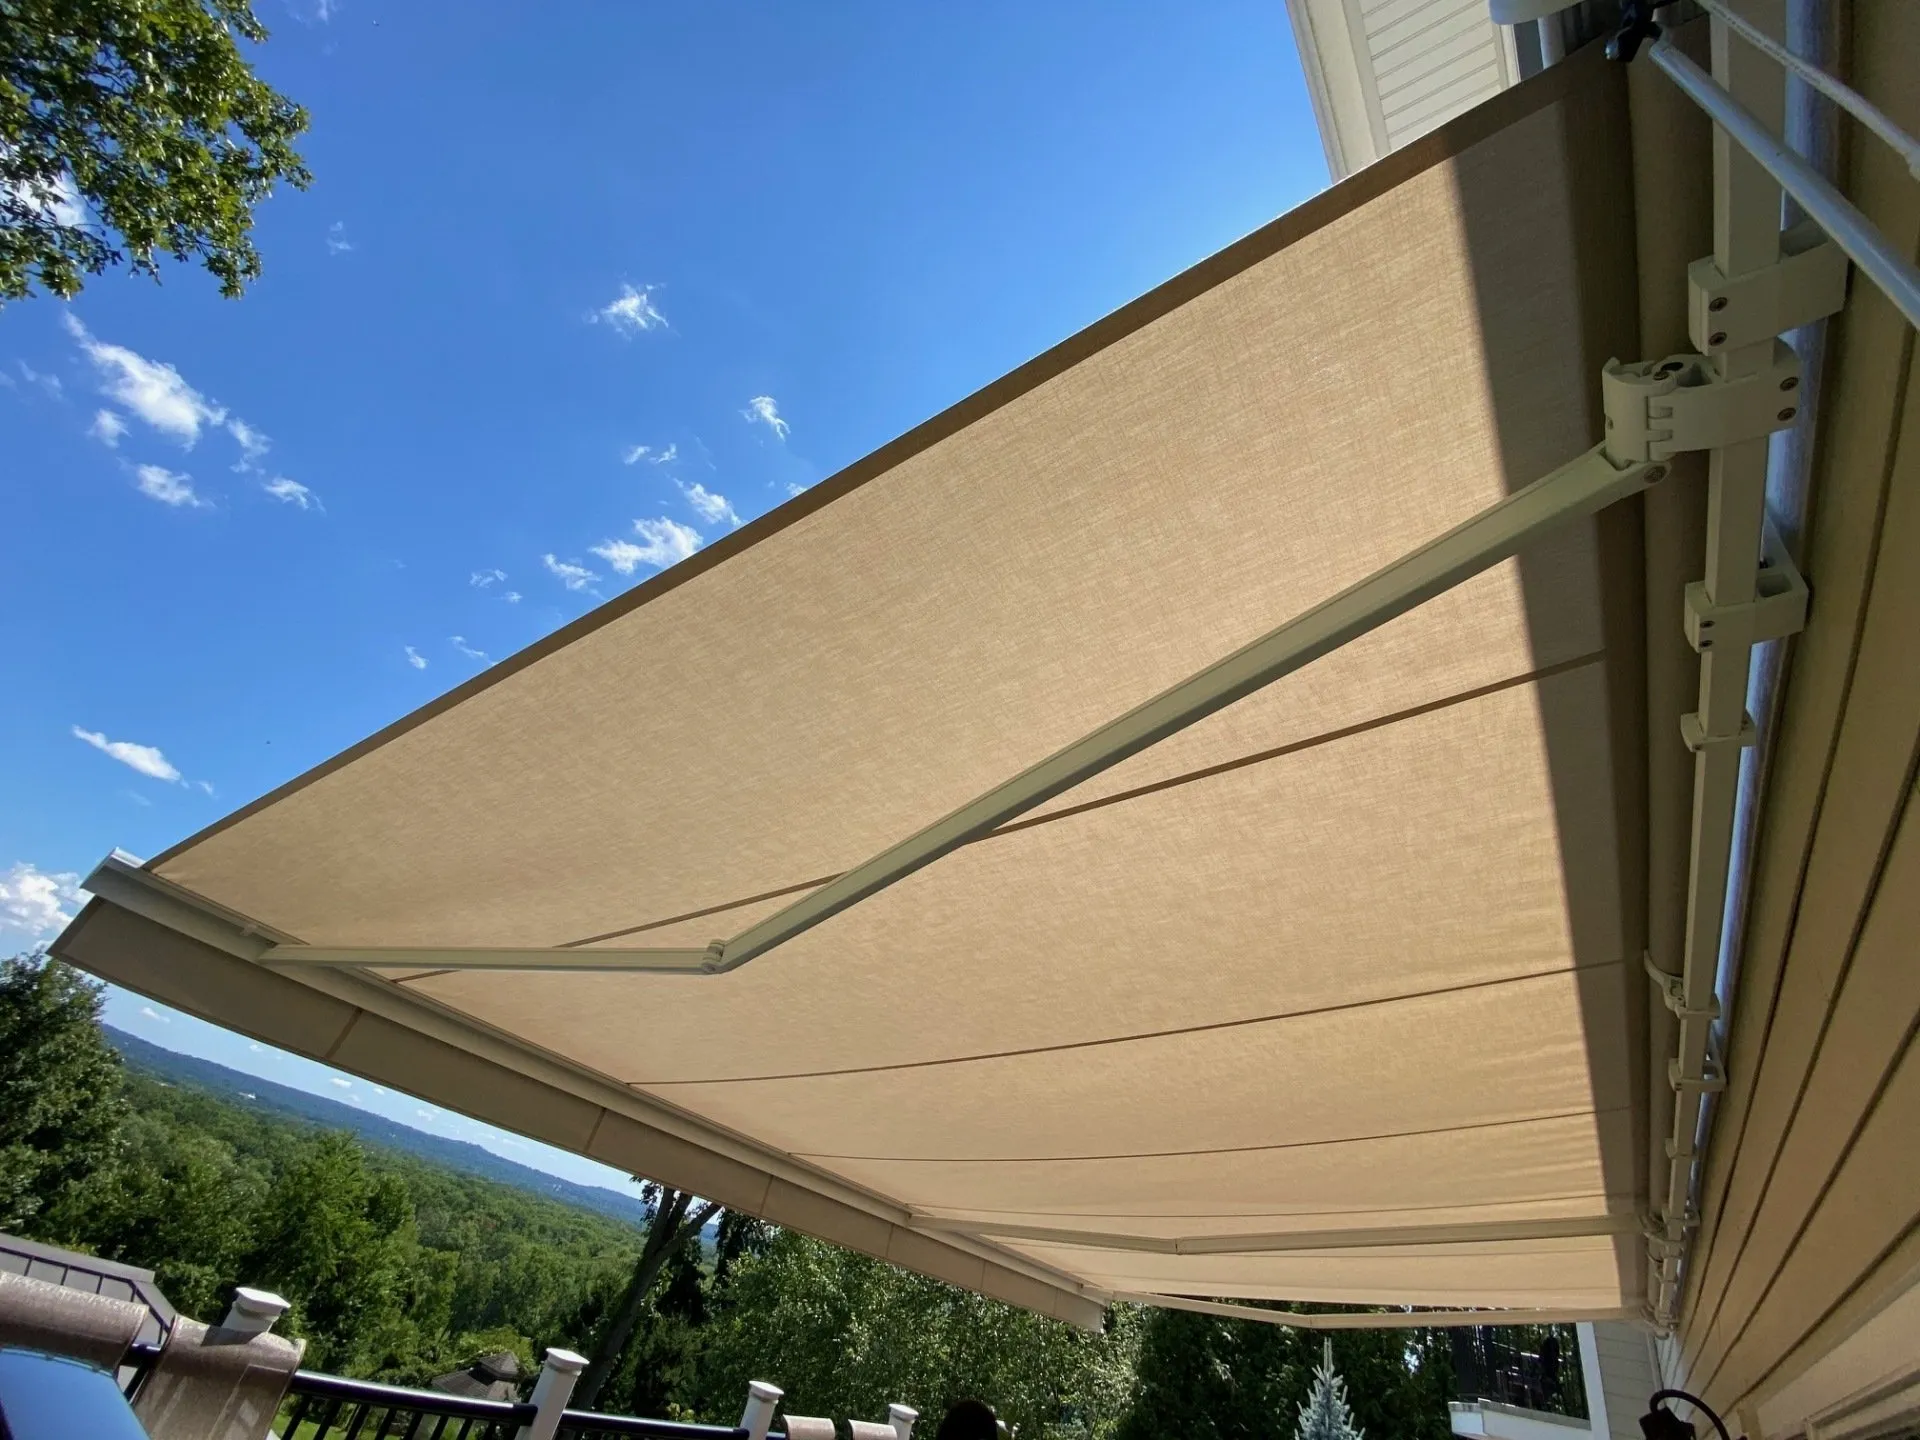 Retractable Awning For Deck or Patio